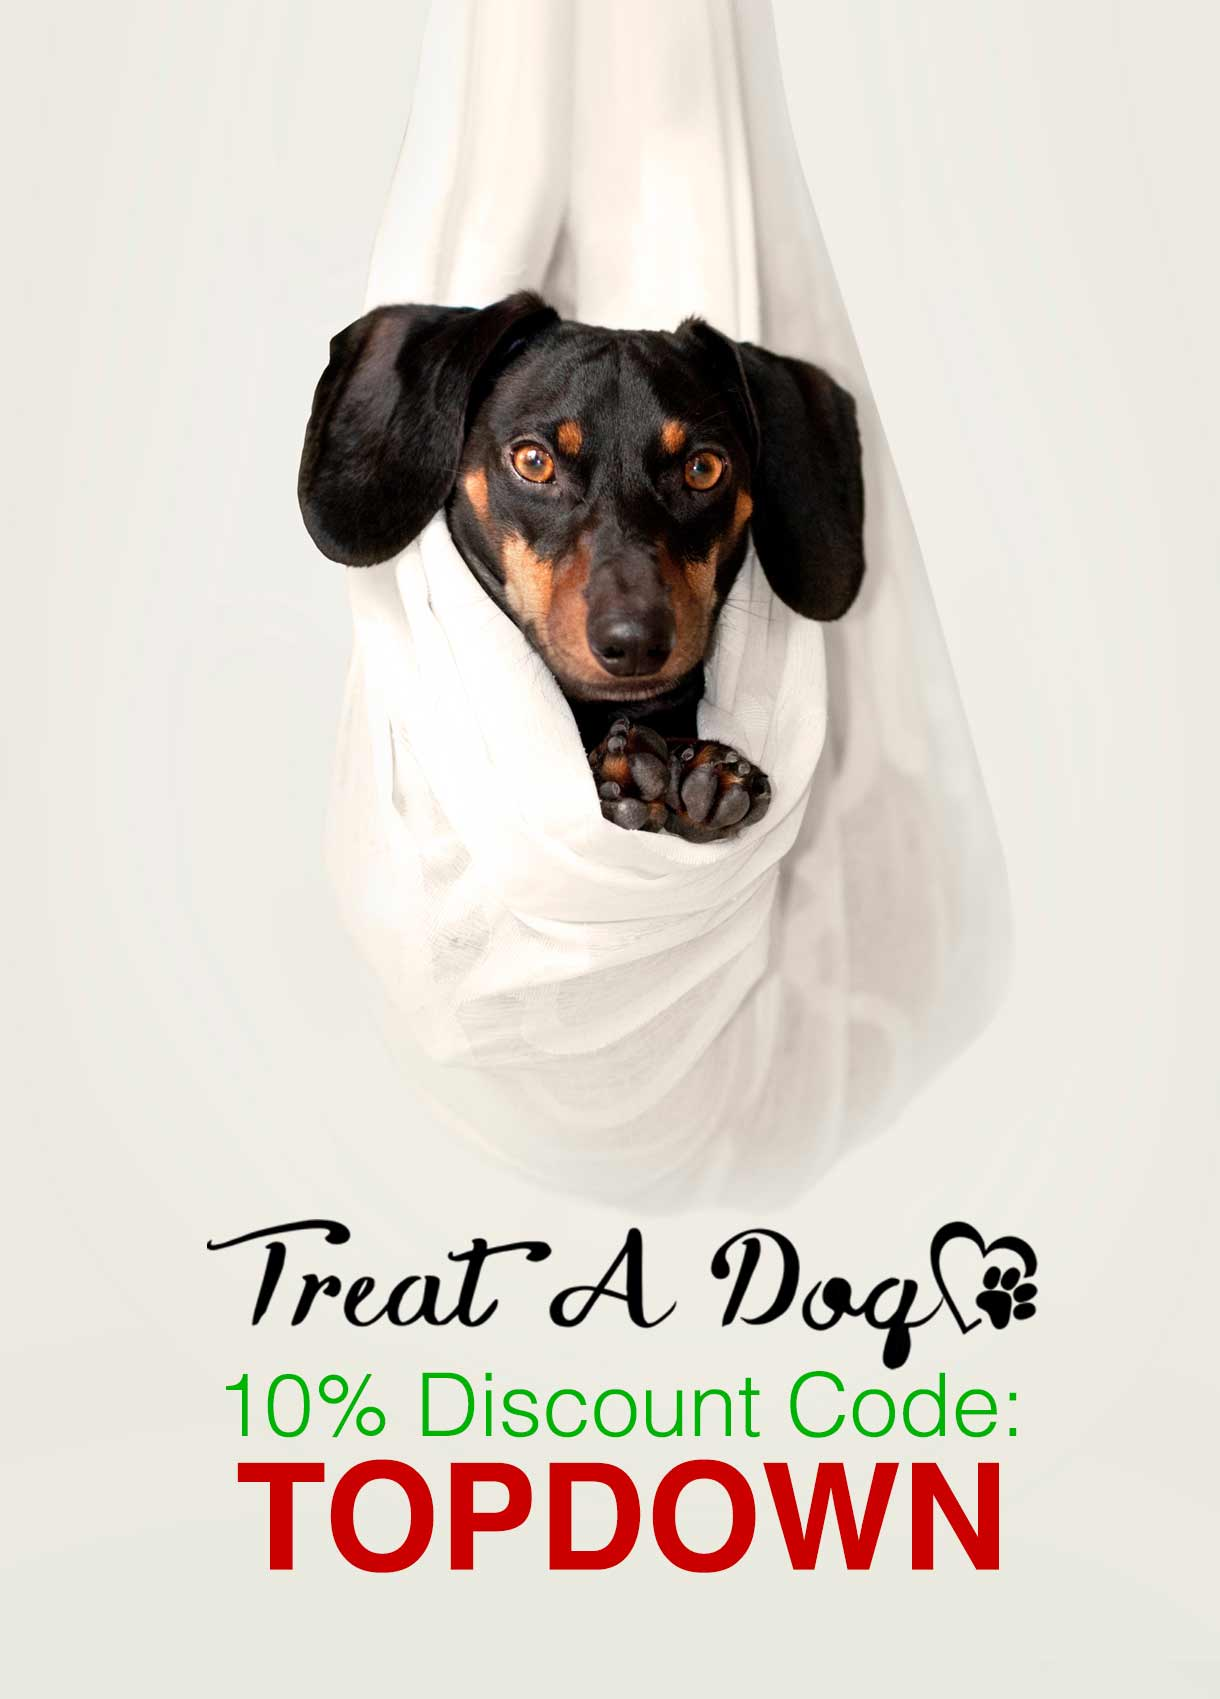 10% Treat A Dog Discount Code: TOPDOWN